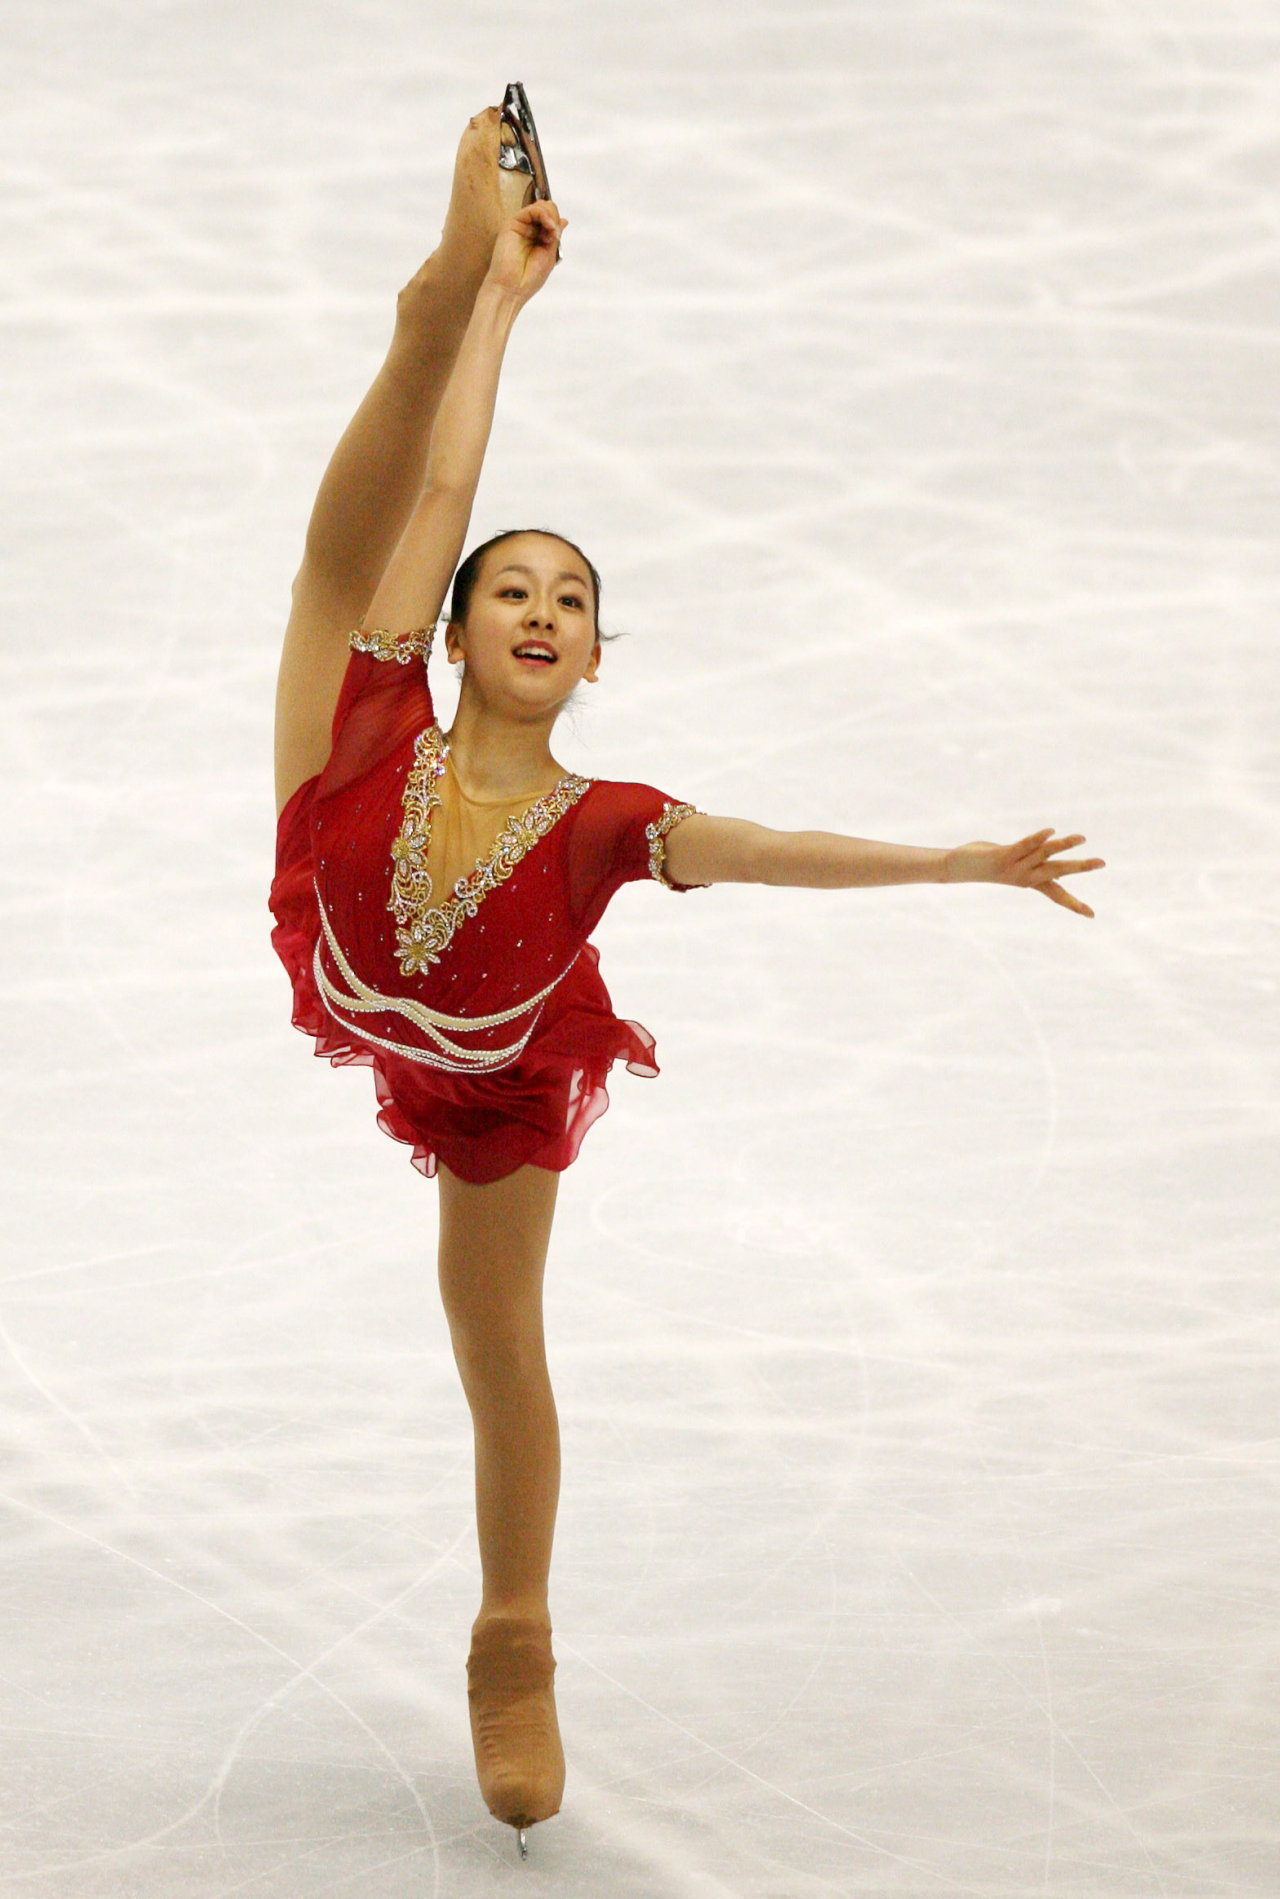 mao-asada-csardas-2006-triple-axel-jumper-figure-skating21.jpg